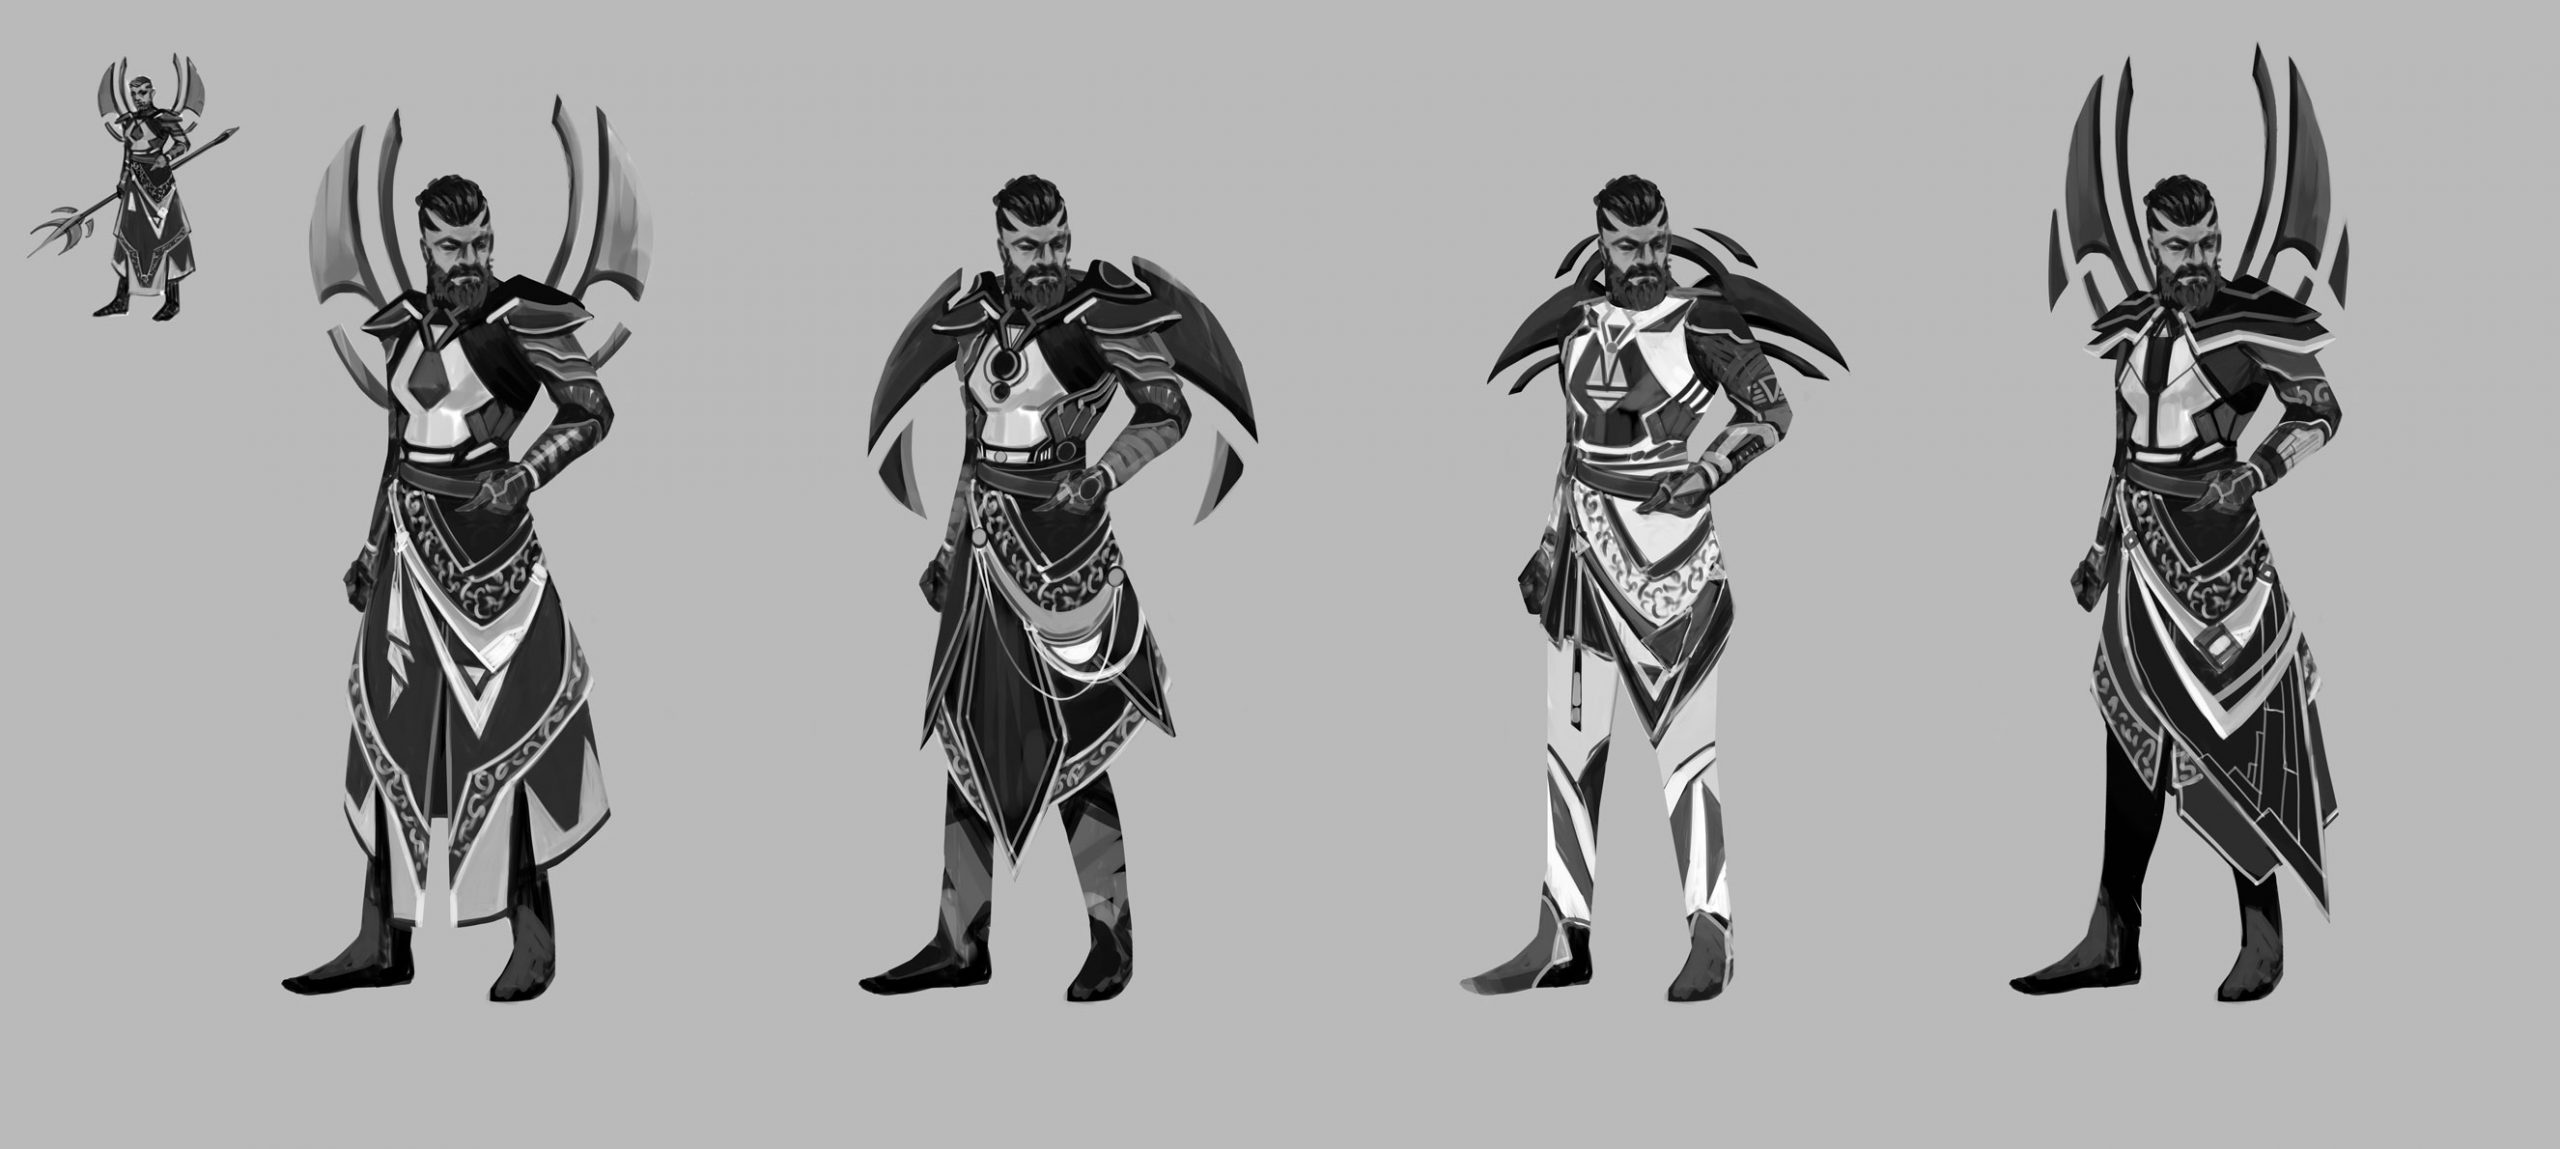 j_strohl_Character3_Iterations